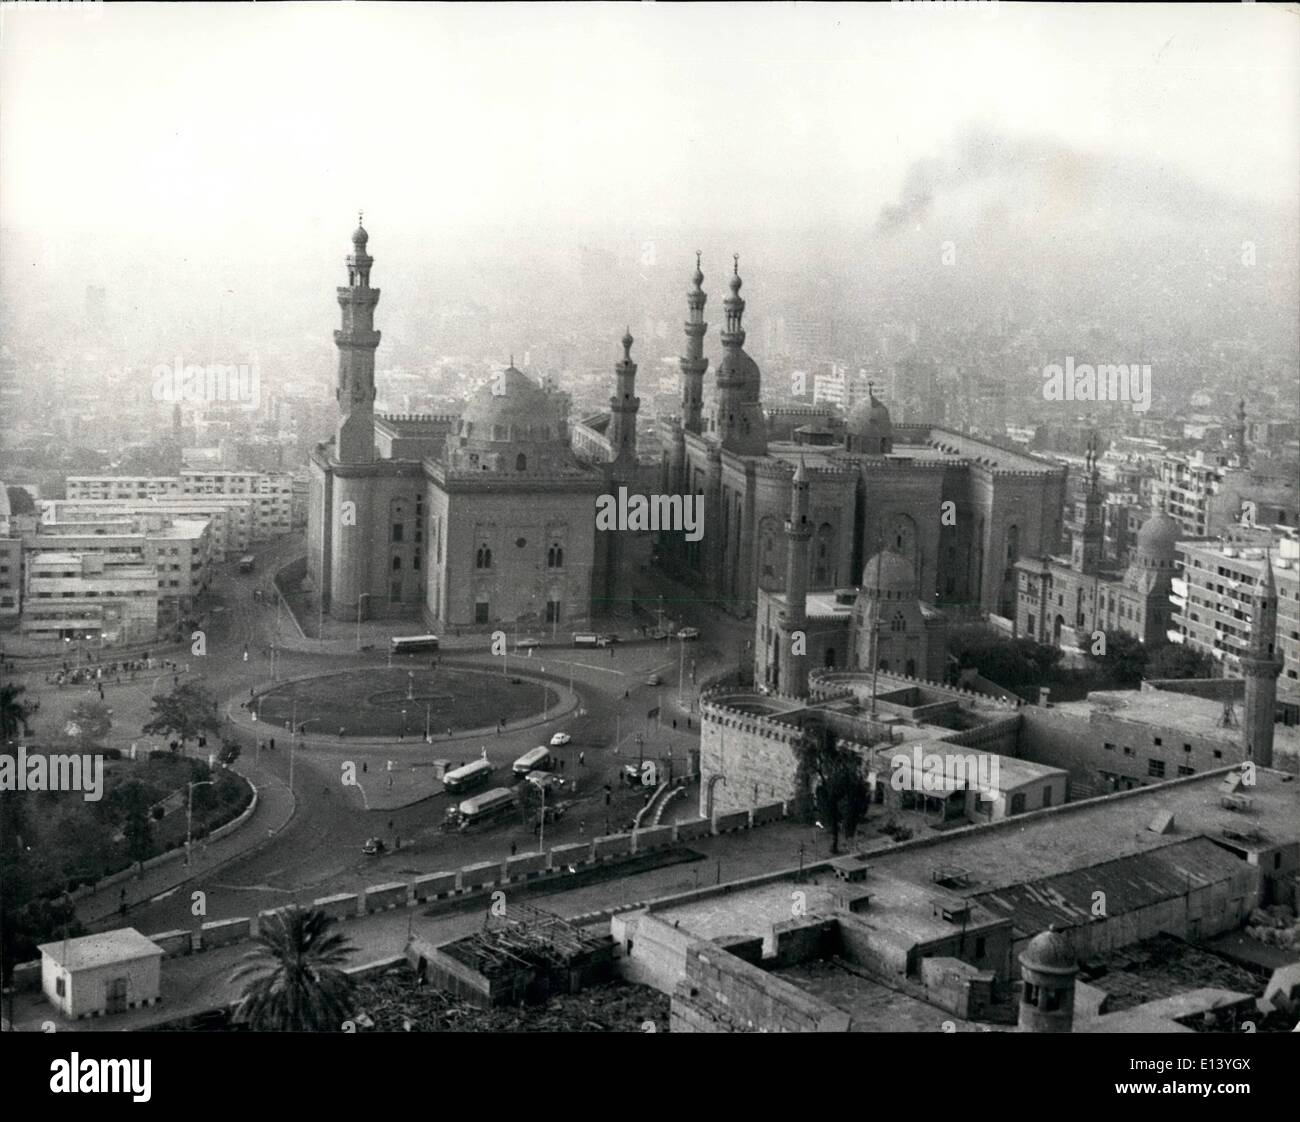 Mar. 27, 2012 - Al Azhar University, Cairo: The Respledent-stronghold of Islam - lies in the heart of Cairo. It is surrounded by the old popular quarters of the city. - Stock Image